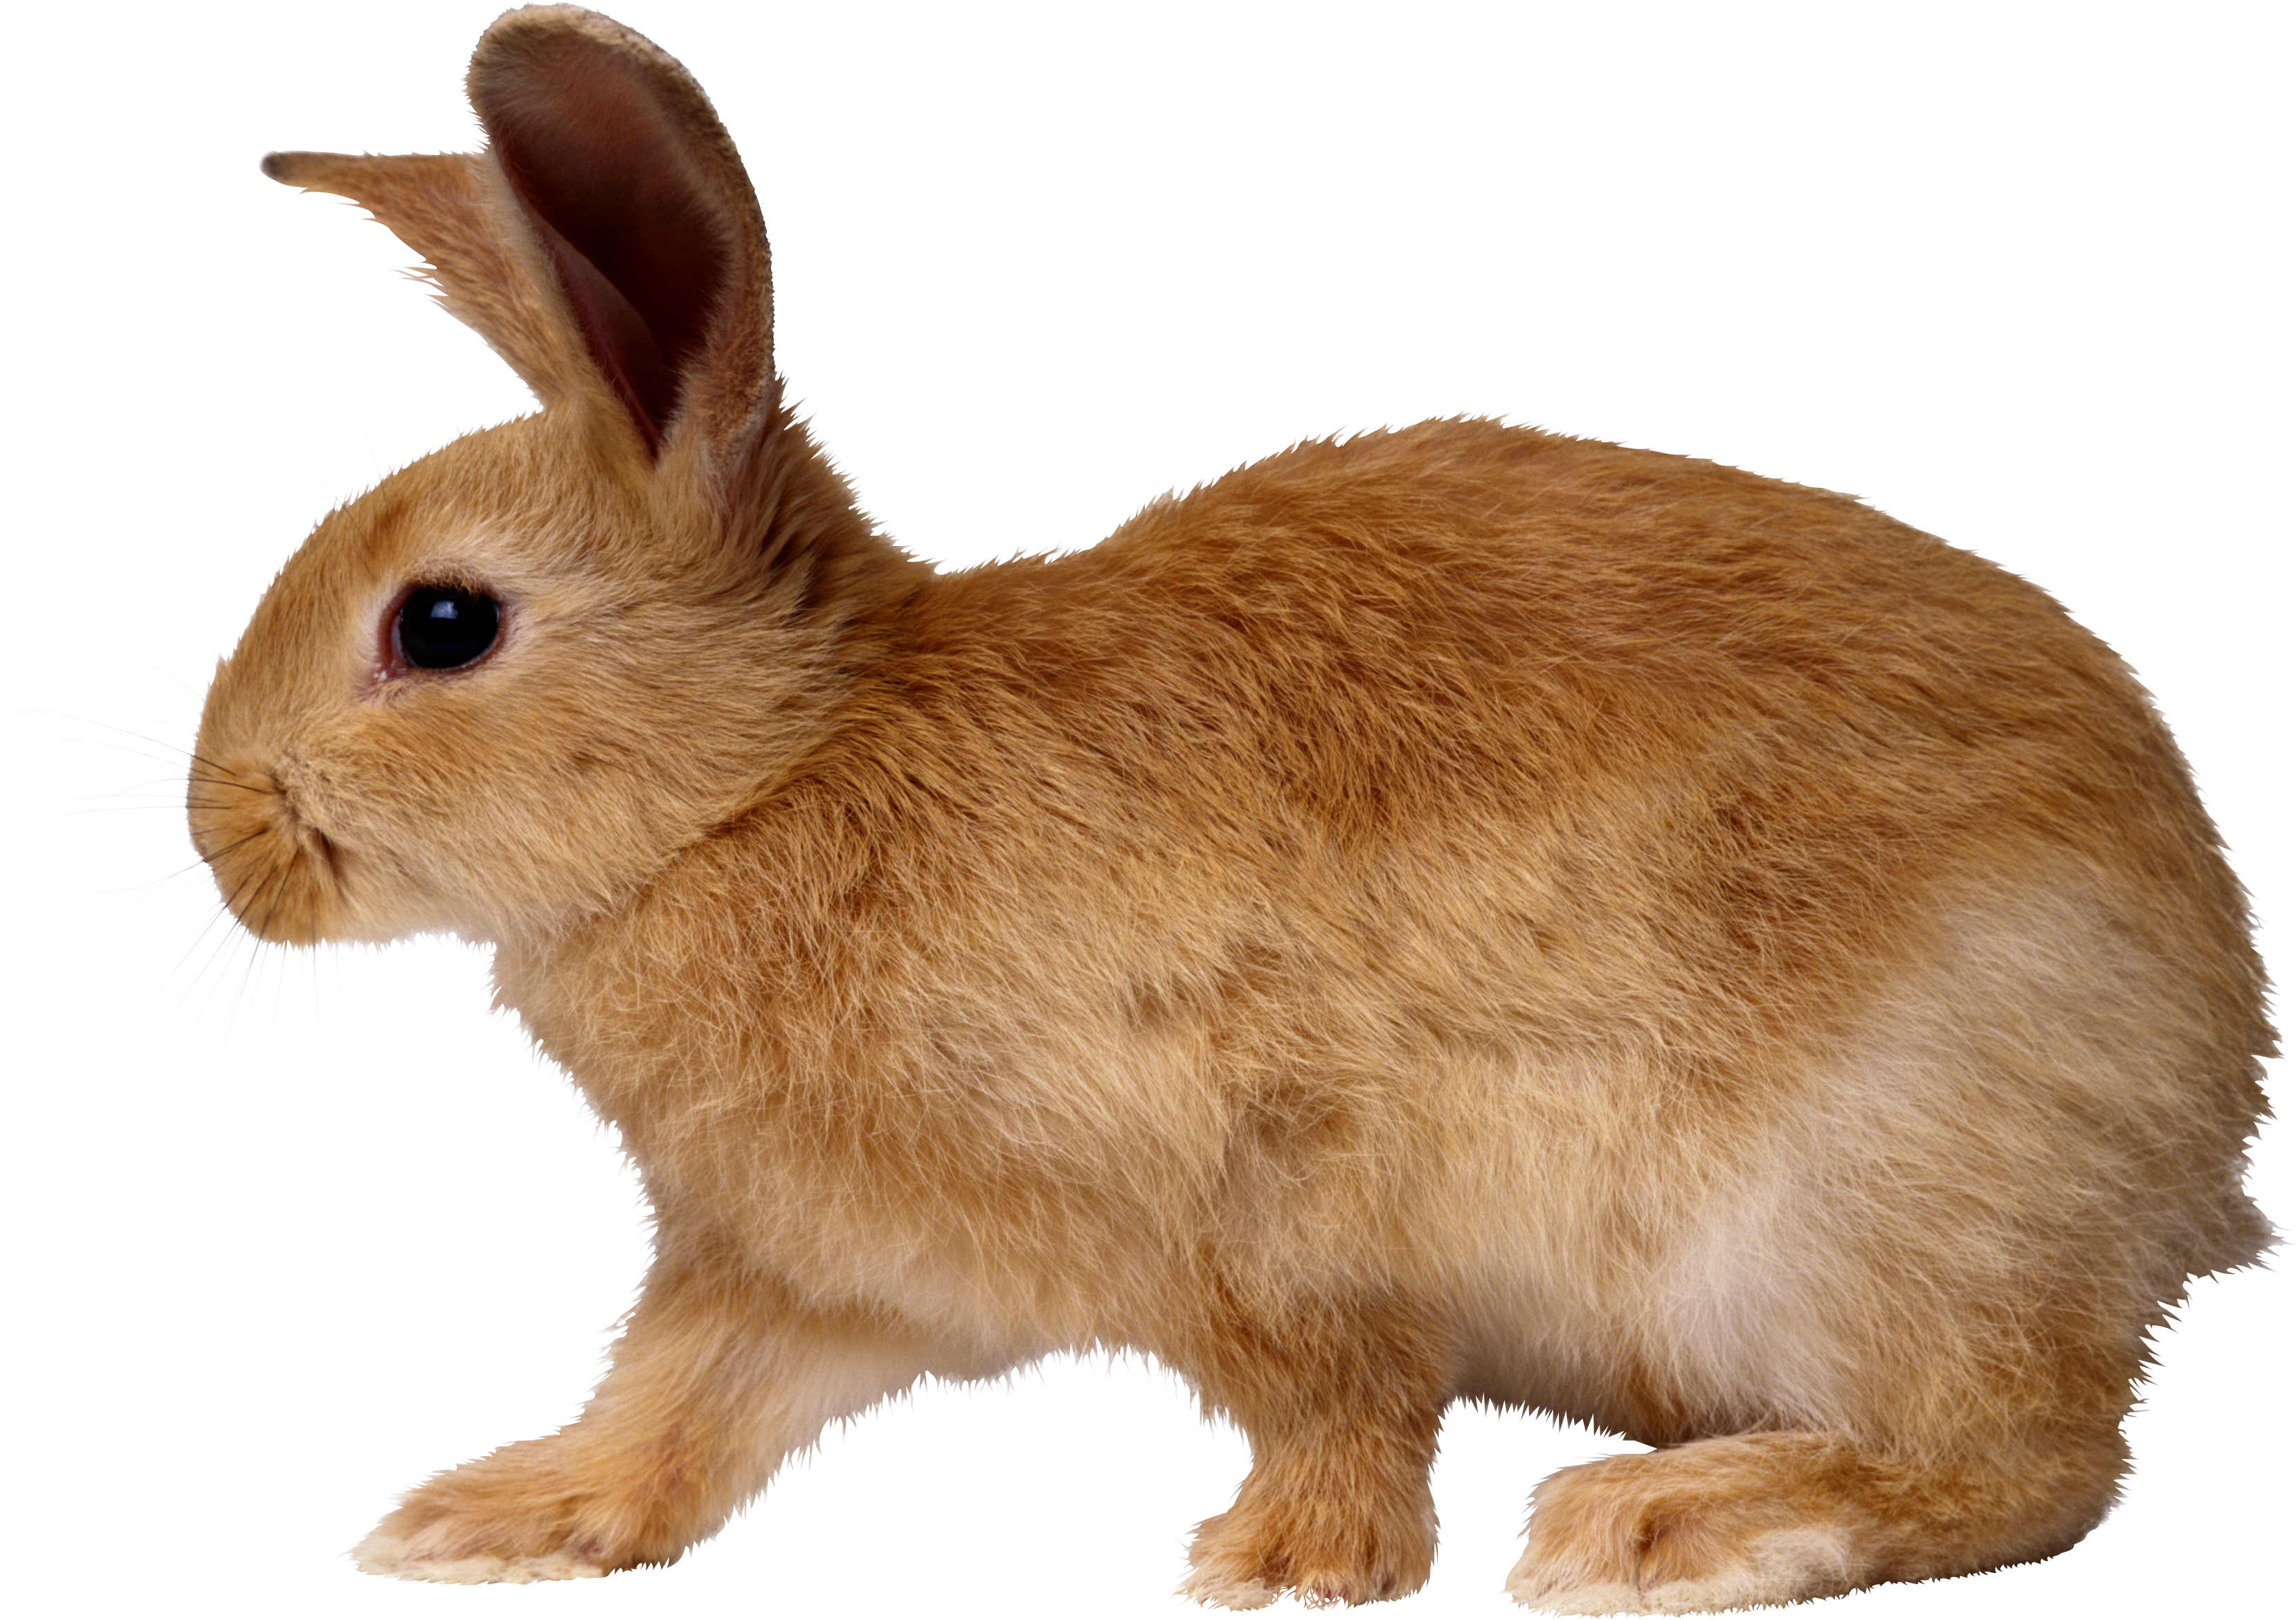 Bunny PNG - 27616